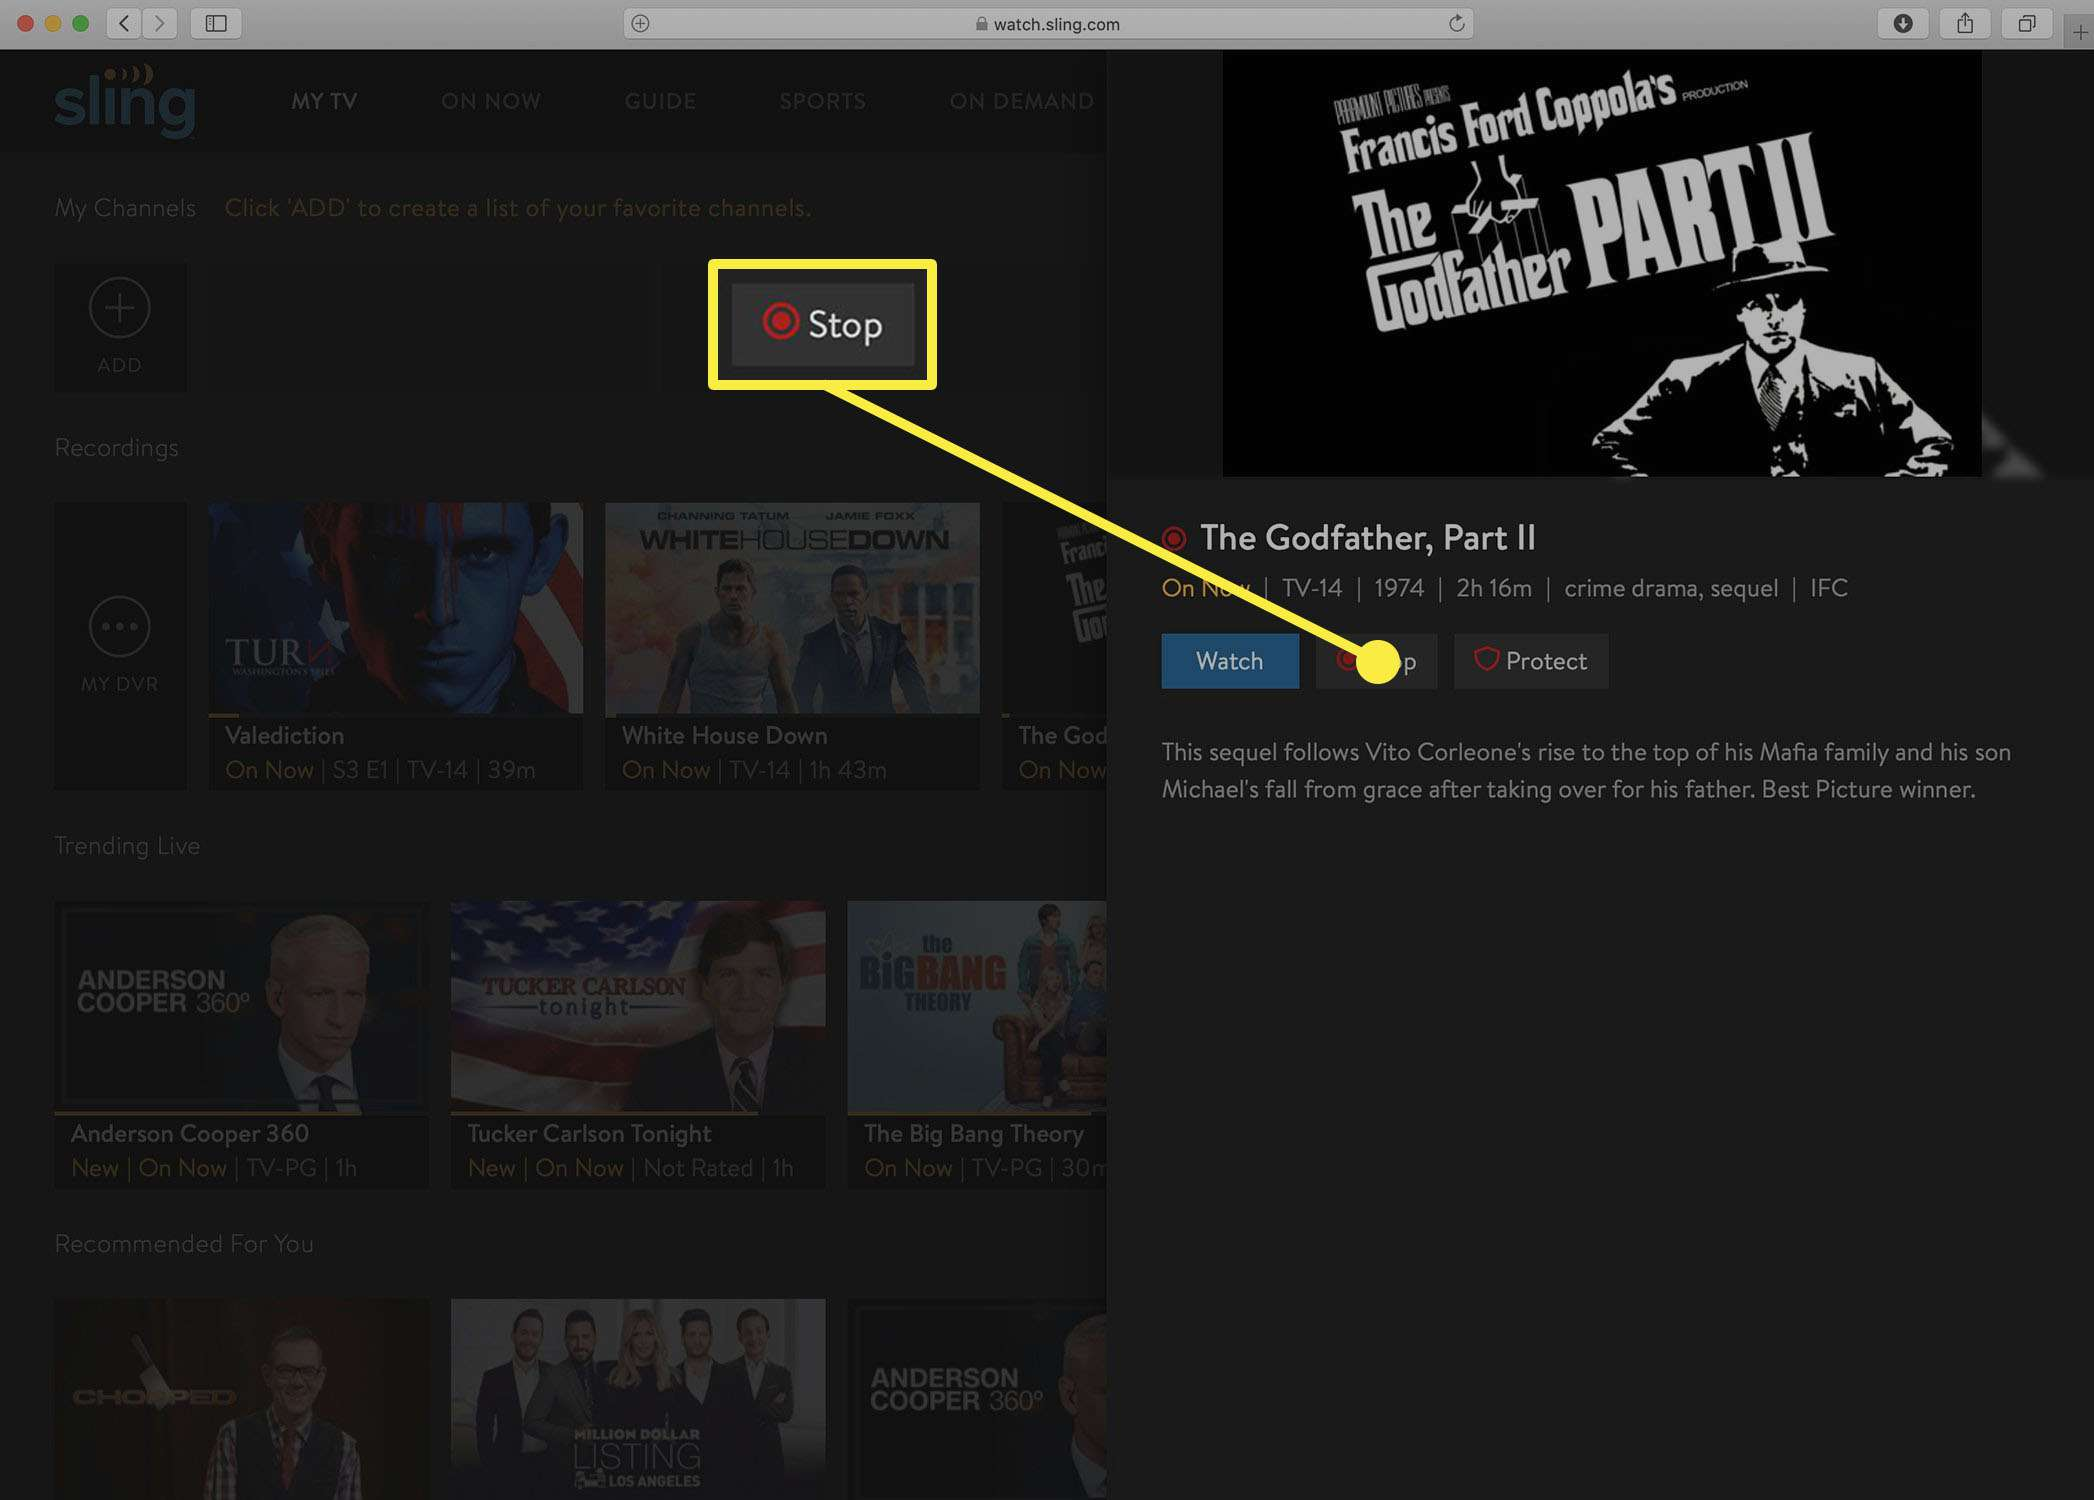 Screenshot of the Sling TV button to stop a DVR recording.